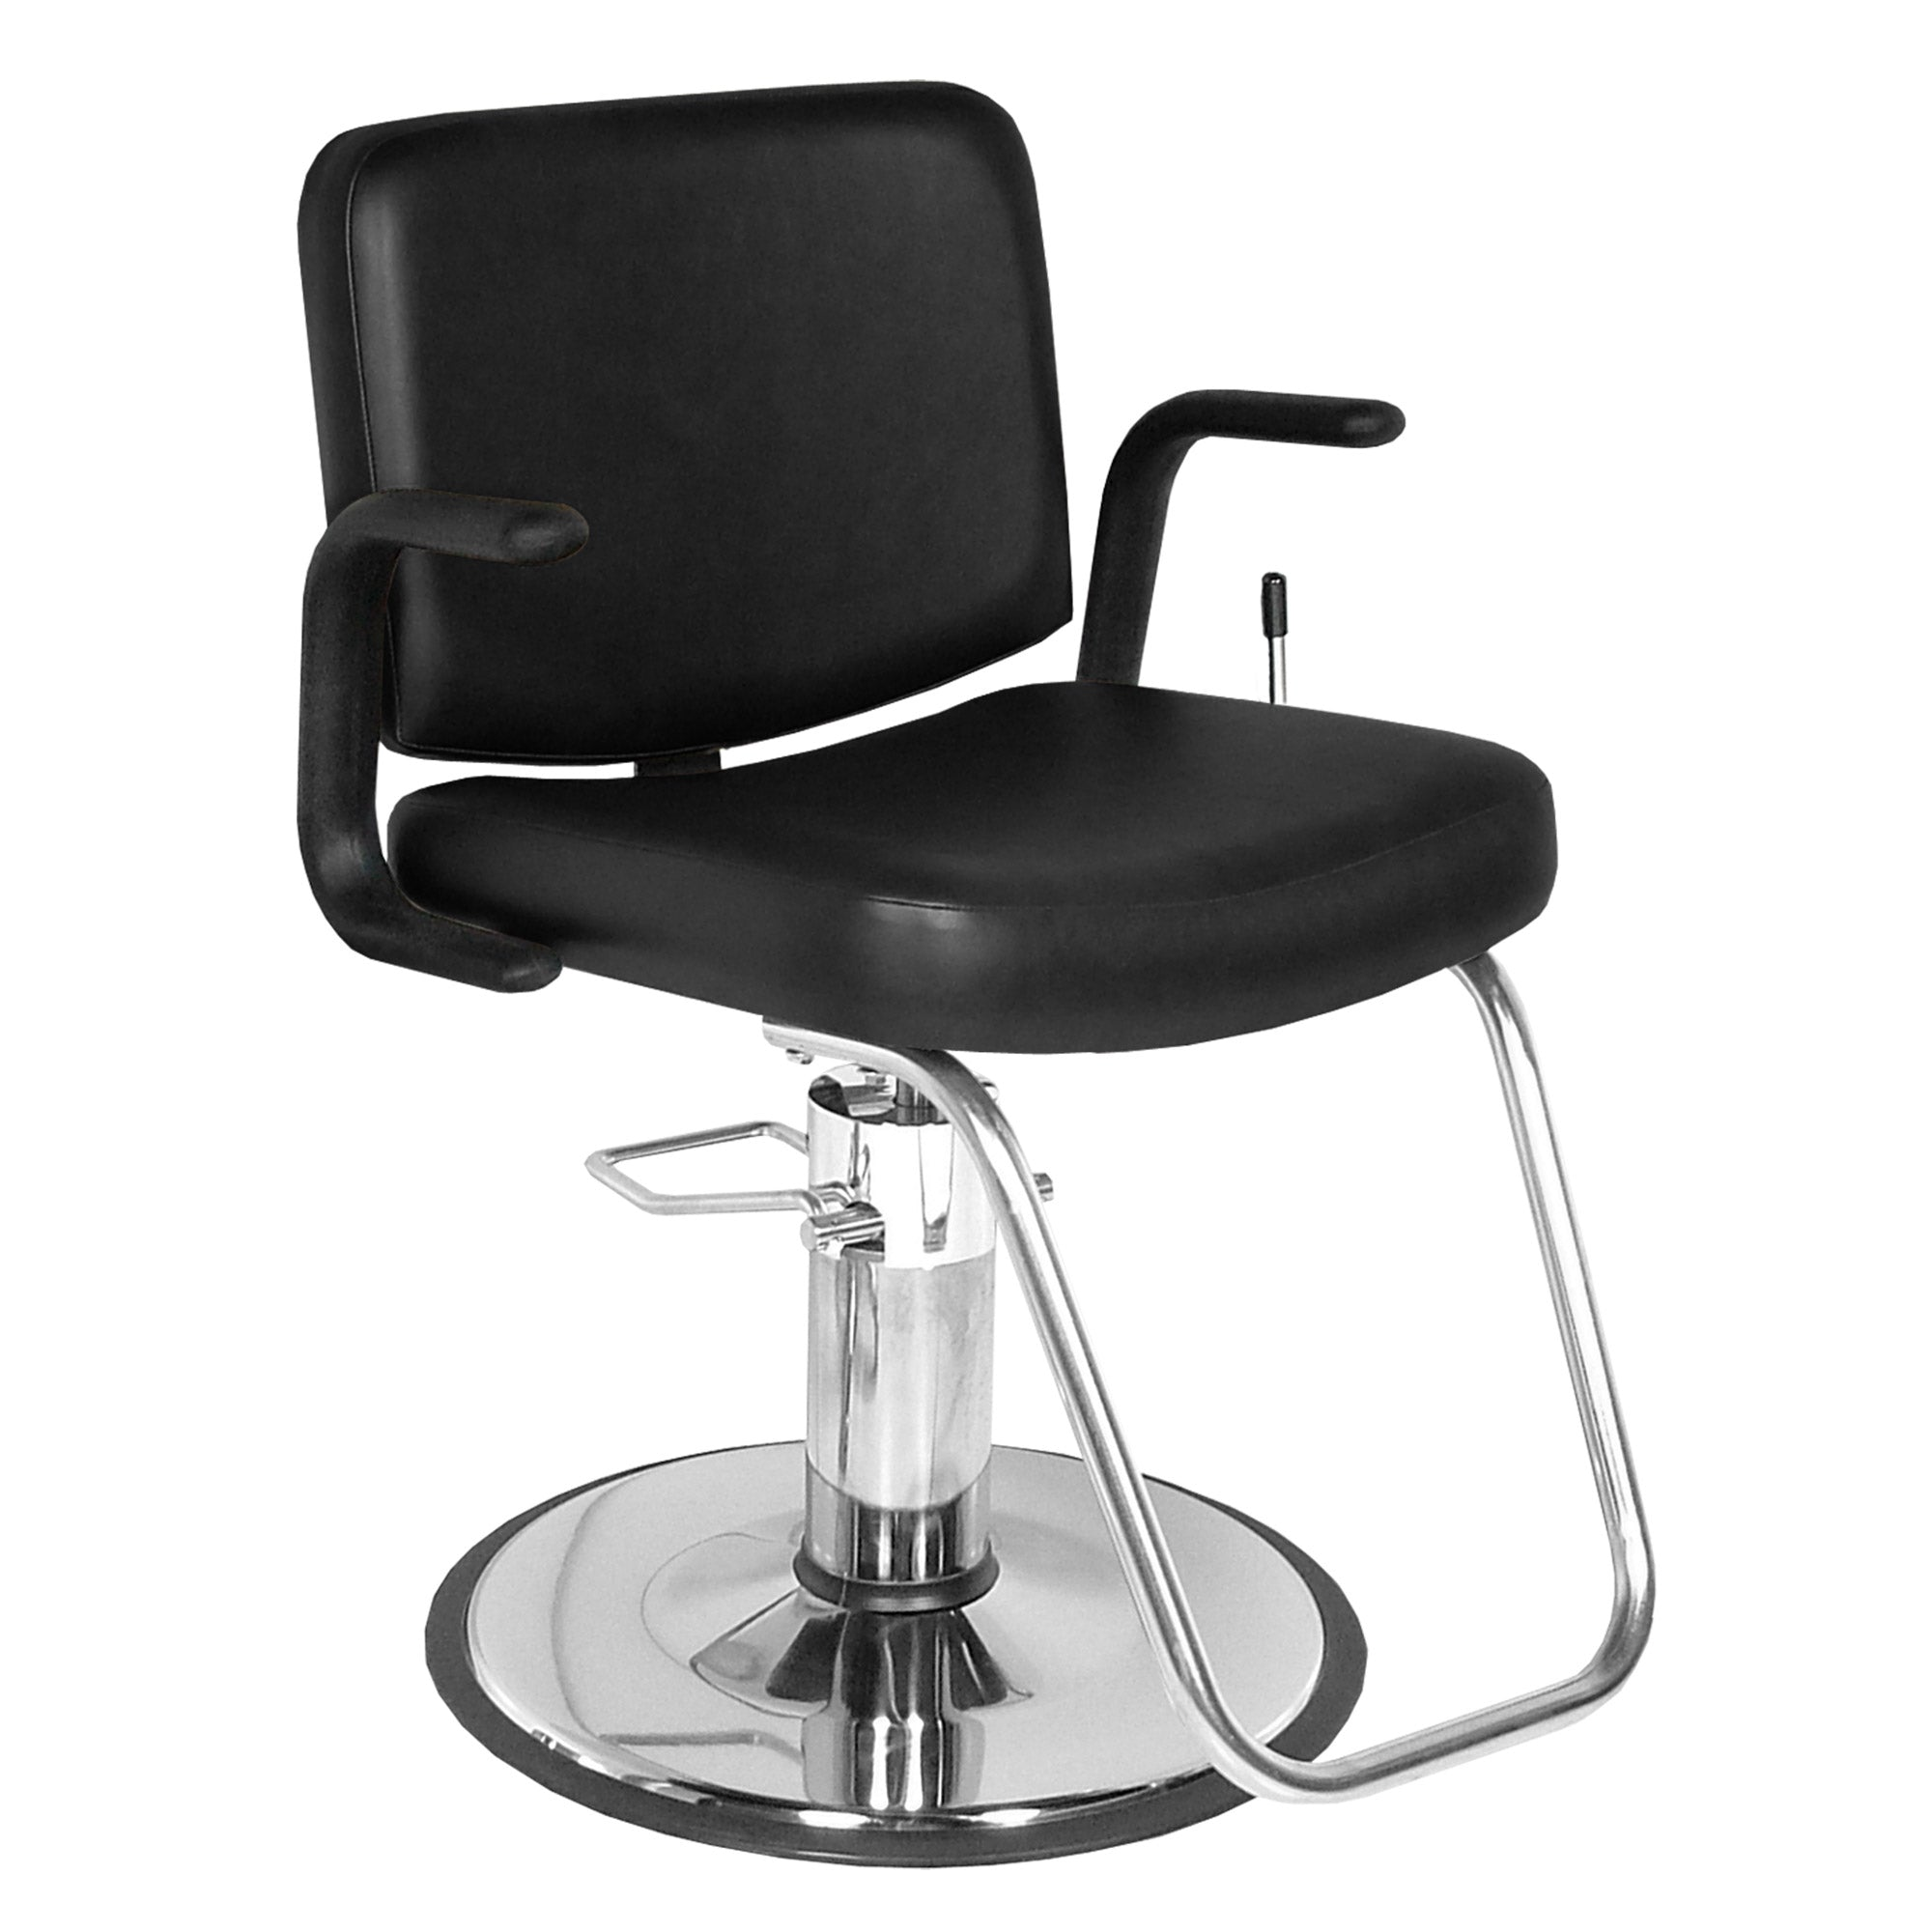 Monte All-Purpose Chair - Collins